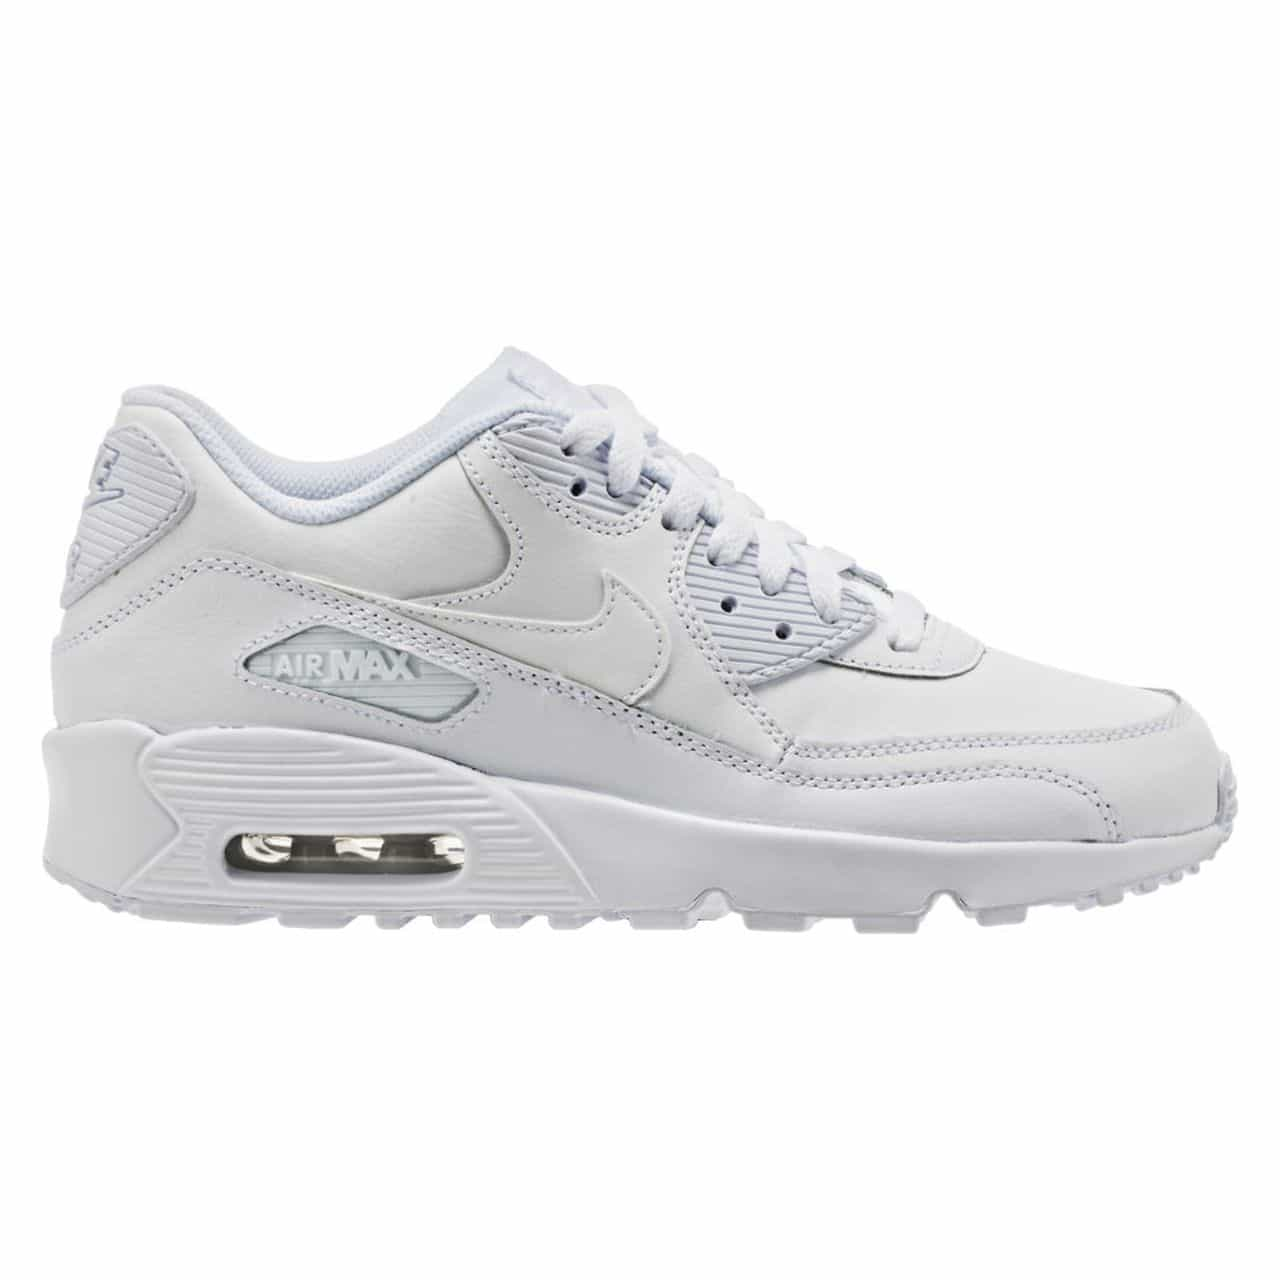 ADIDASI ORIGINALI NIKE AIR MAX 90 LTR (GS) - 833412 100